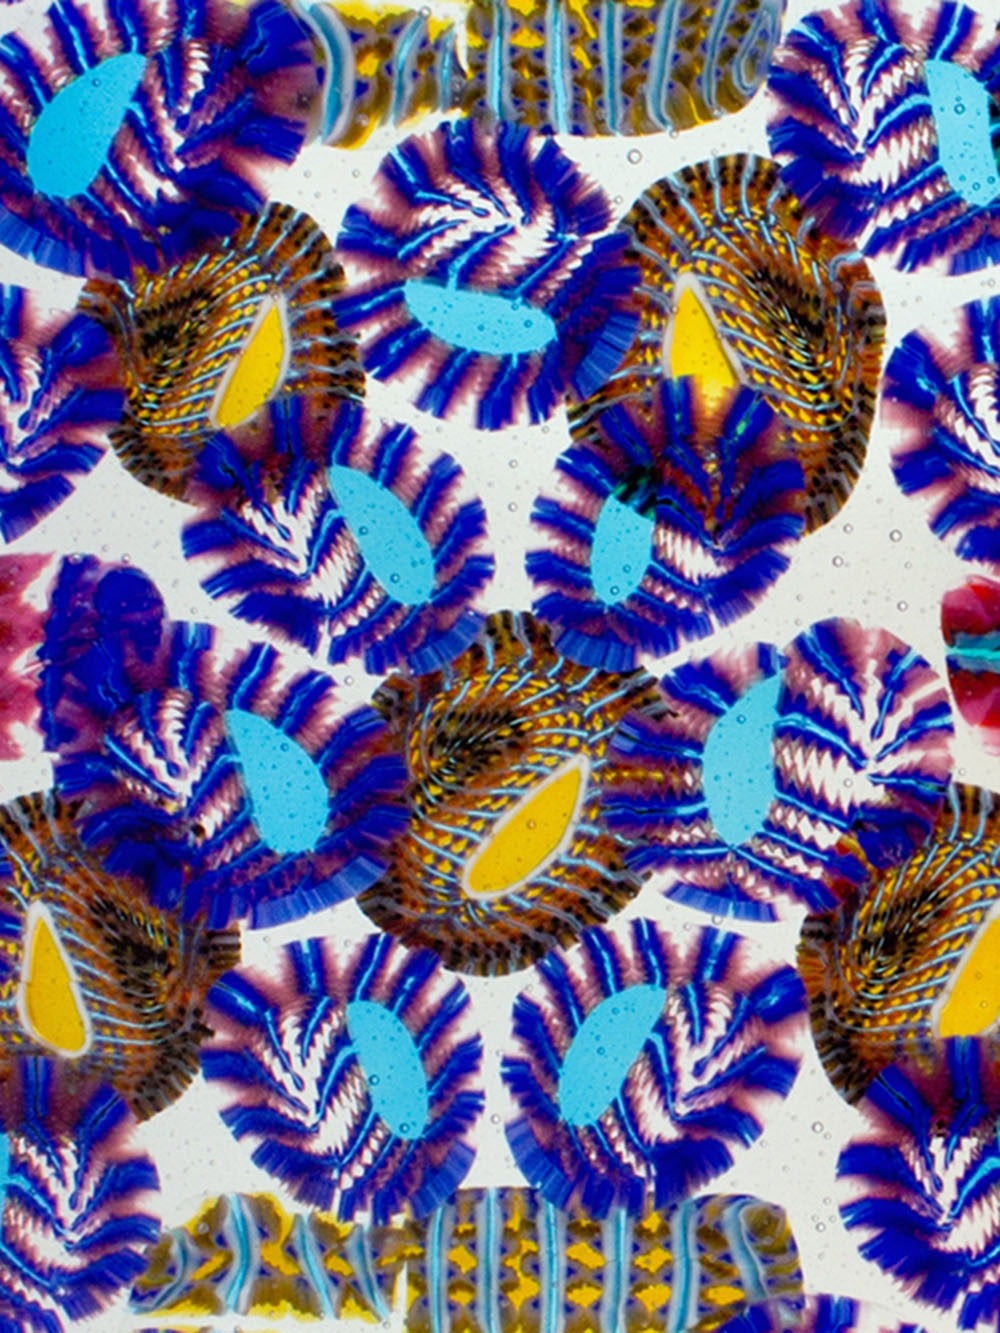 Untitled No. 7 (Paisley Abstraction)